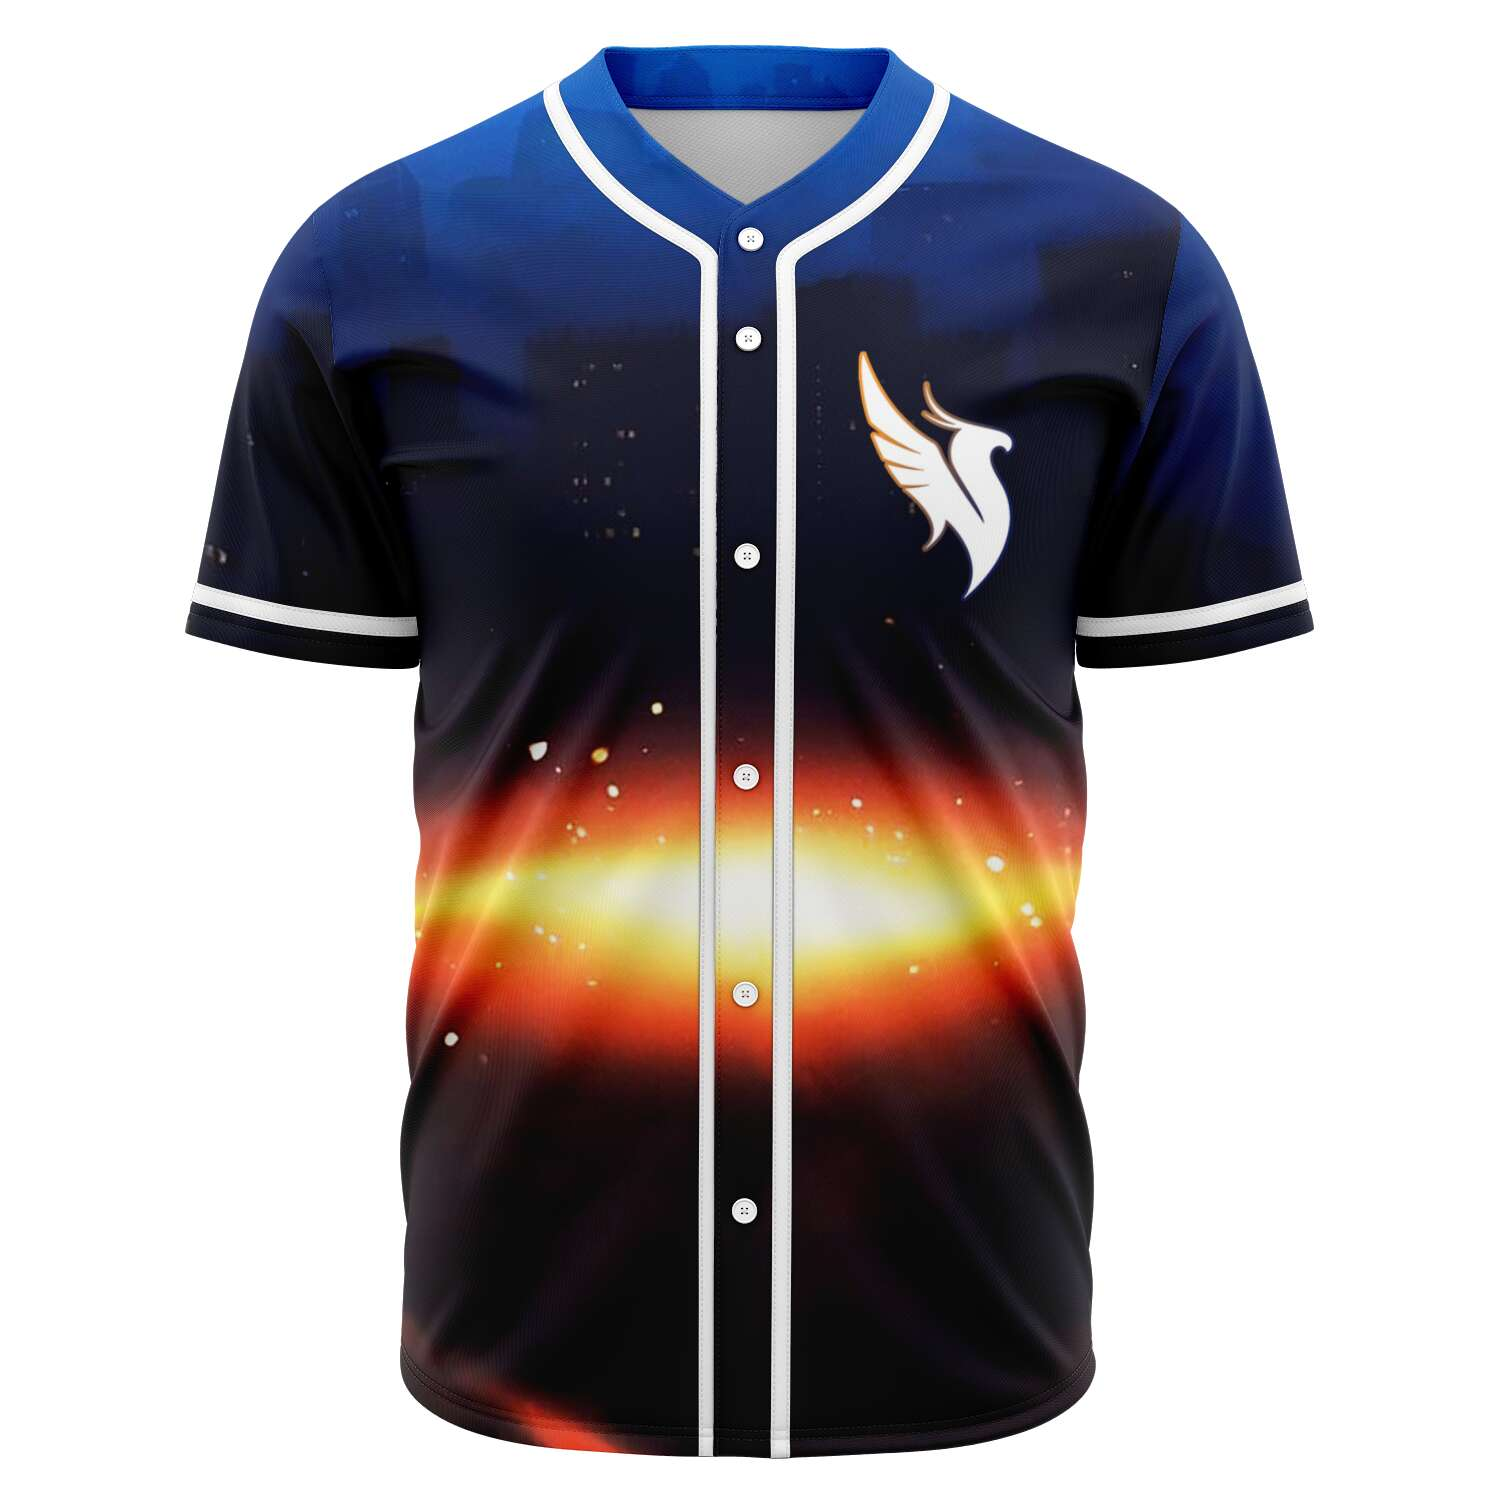 Illenium nightlight jersey